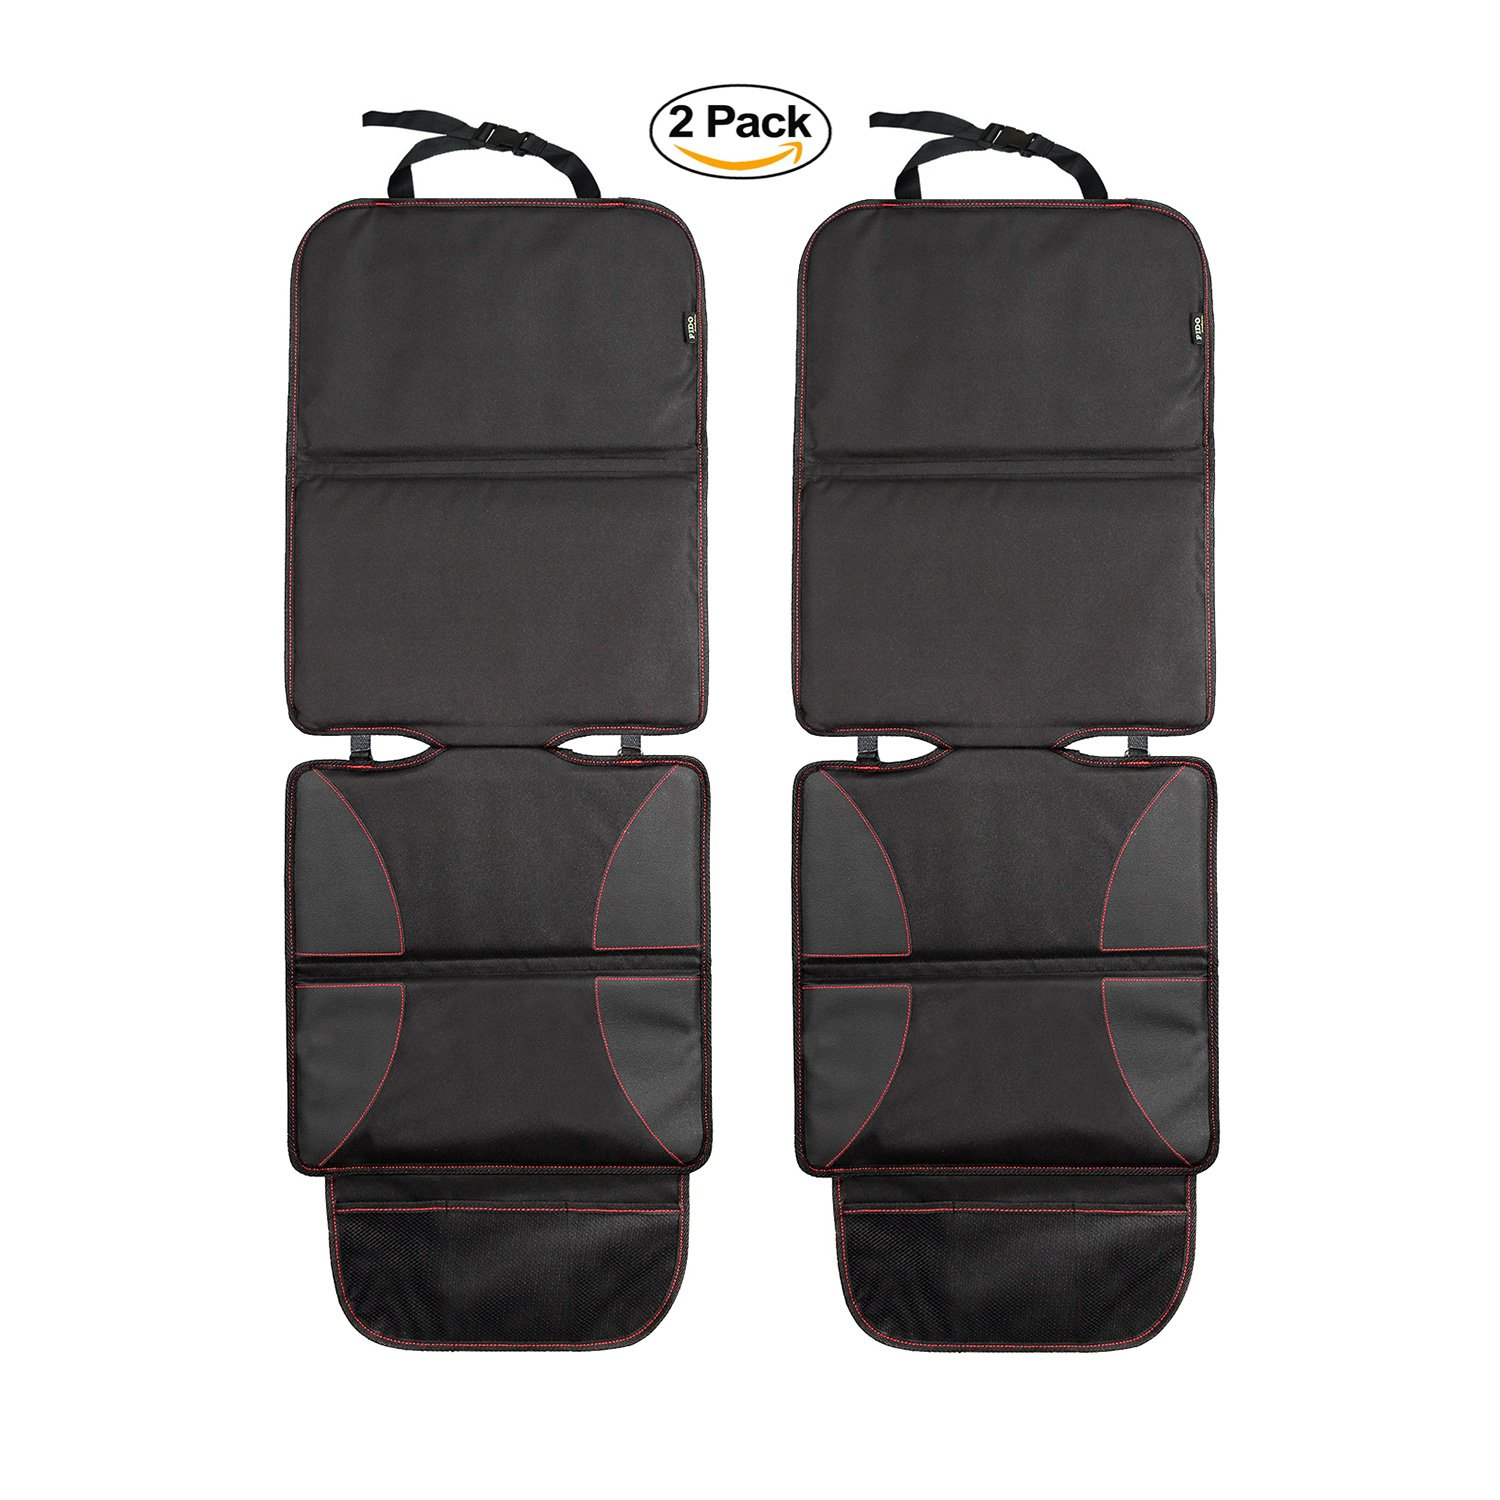 Parts & Accessories Interior Car Seat Protector Mat For Leather And Upholstery With Waterproof Underpad